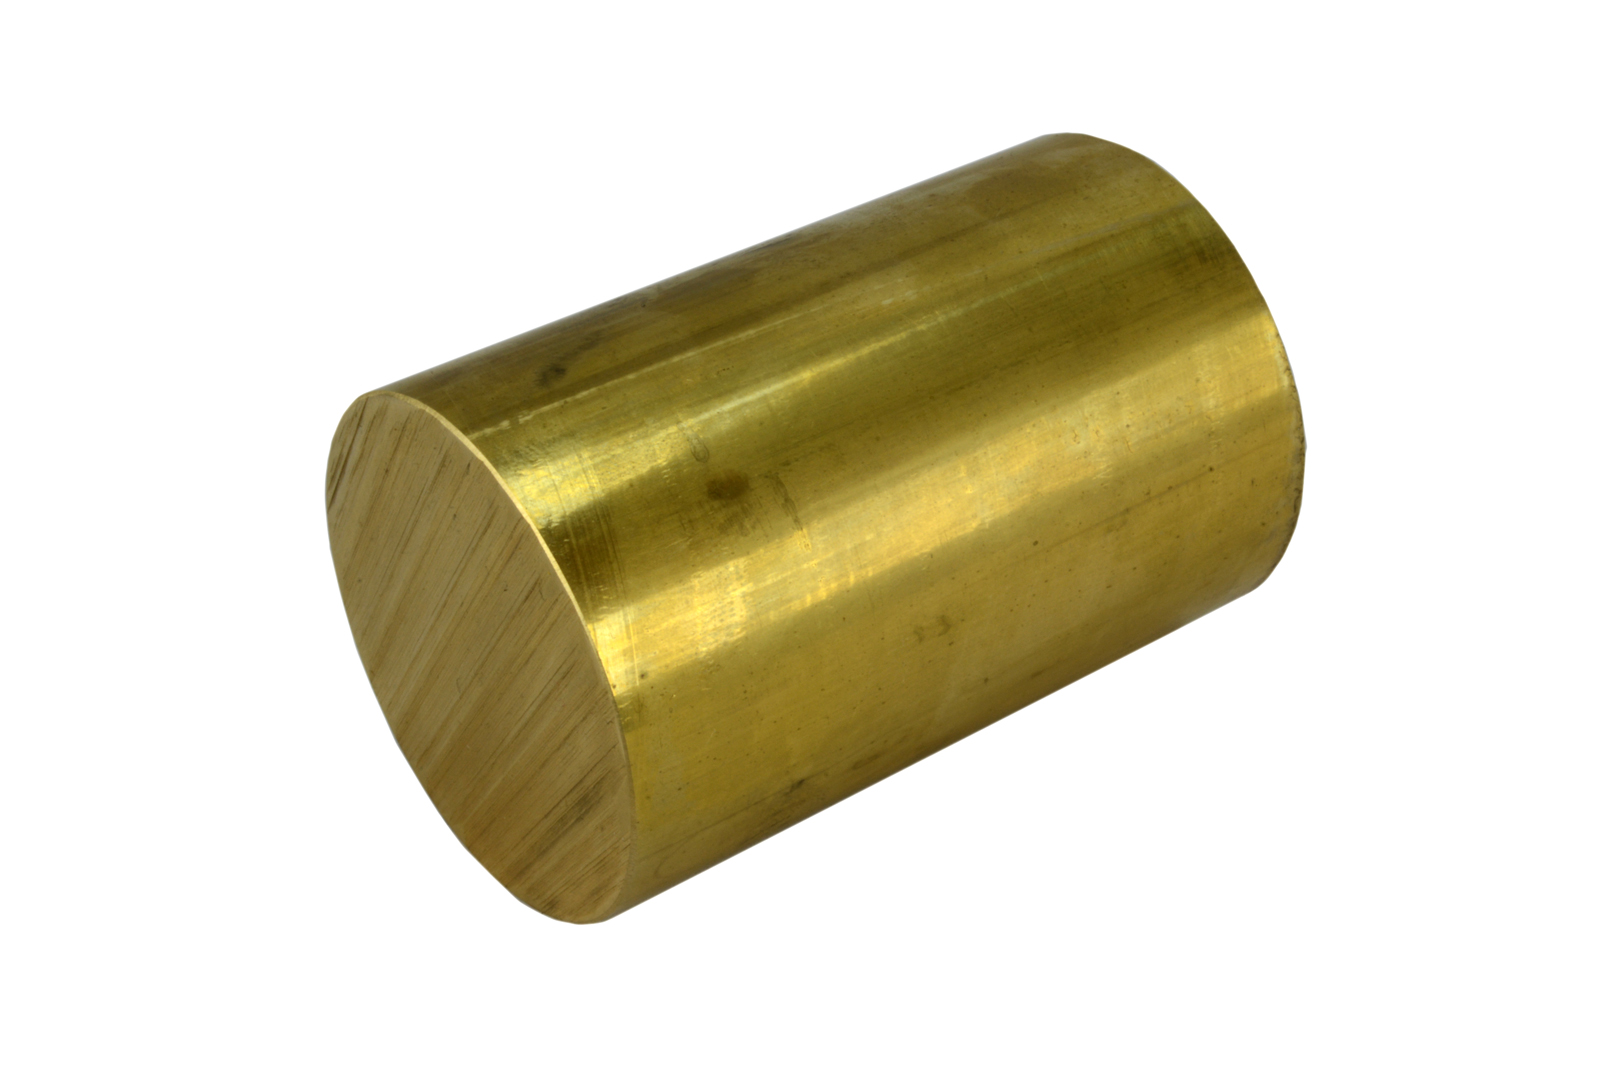 Quot inch dia long c brass half hard round bar lathe